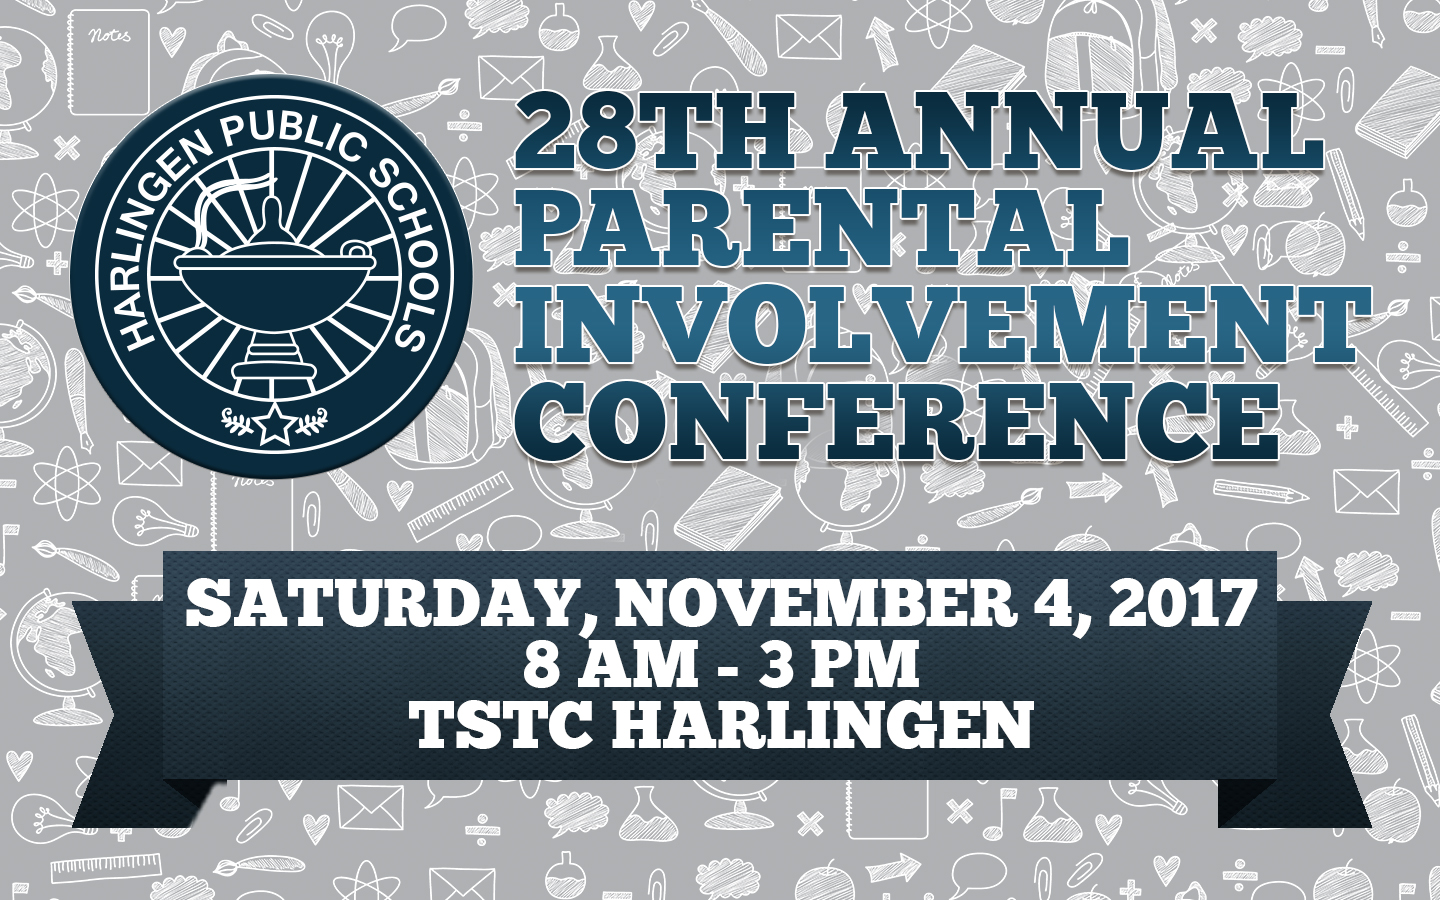 HCISD to host 28th Annual Parental Involvement Districtwide Conference